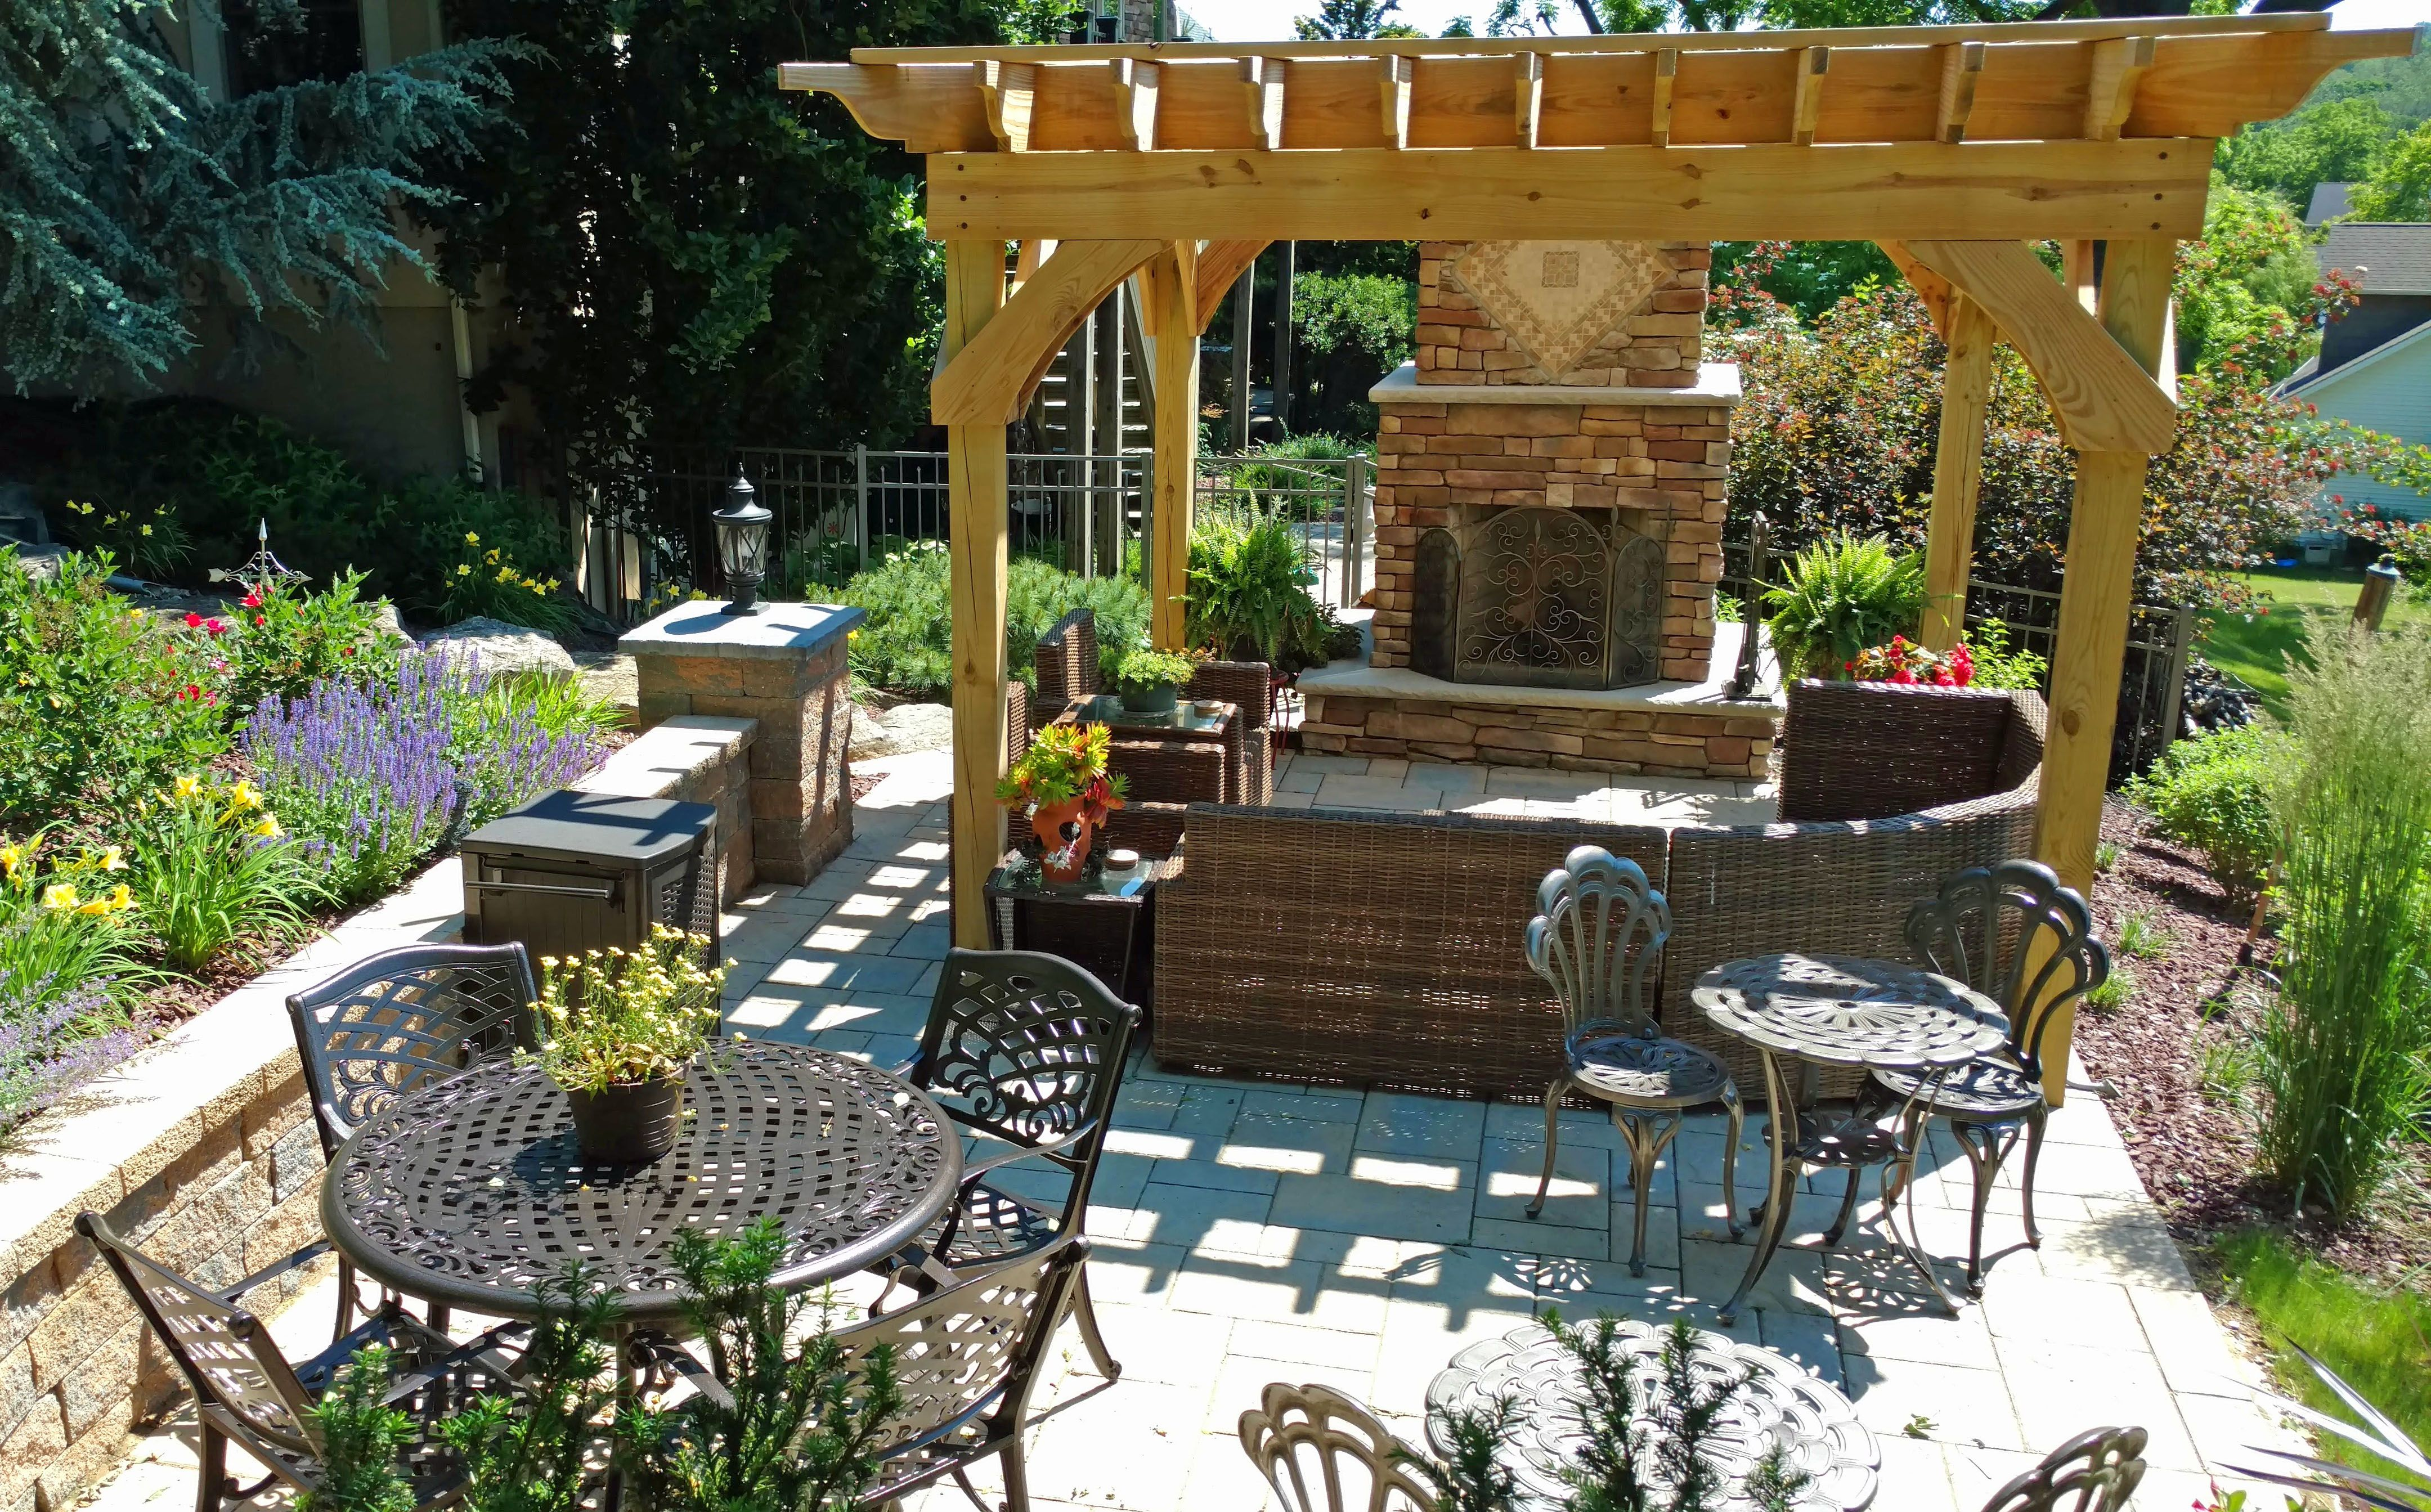 Awesome Outdoor Fireplace Patio Design Ideas Modern Cool At Outdoor Fireplace Patio House Decorating Patio Outdoor Patio Designs Colorful Patio